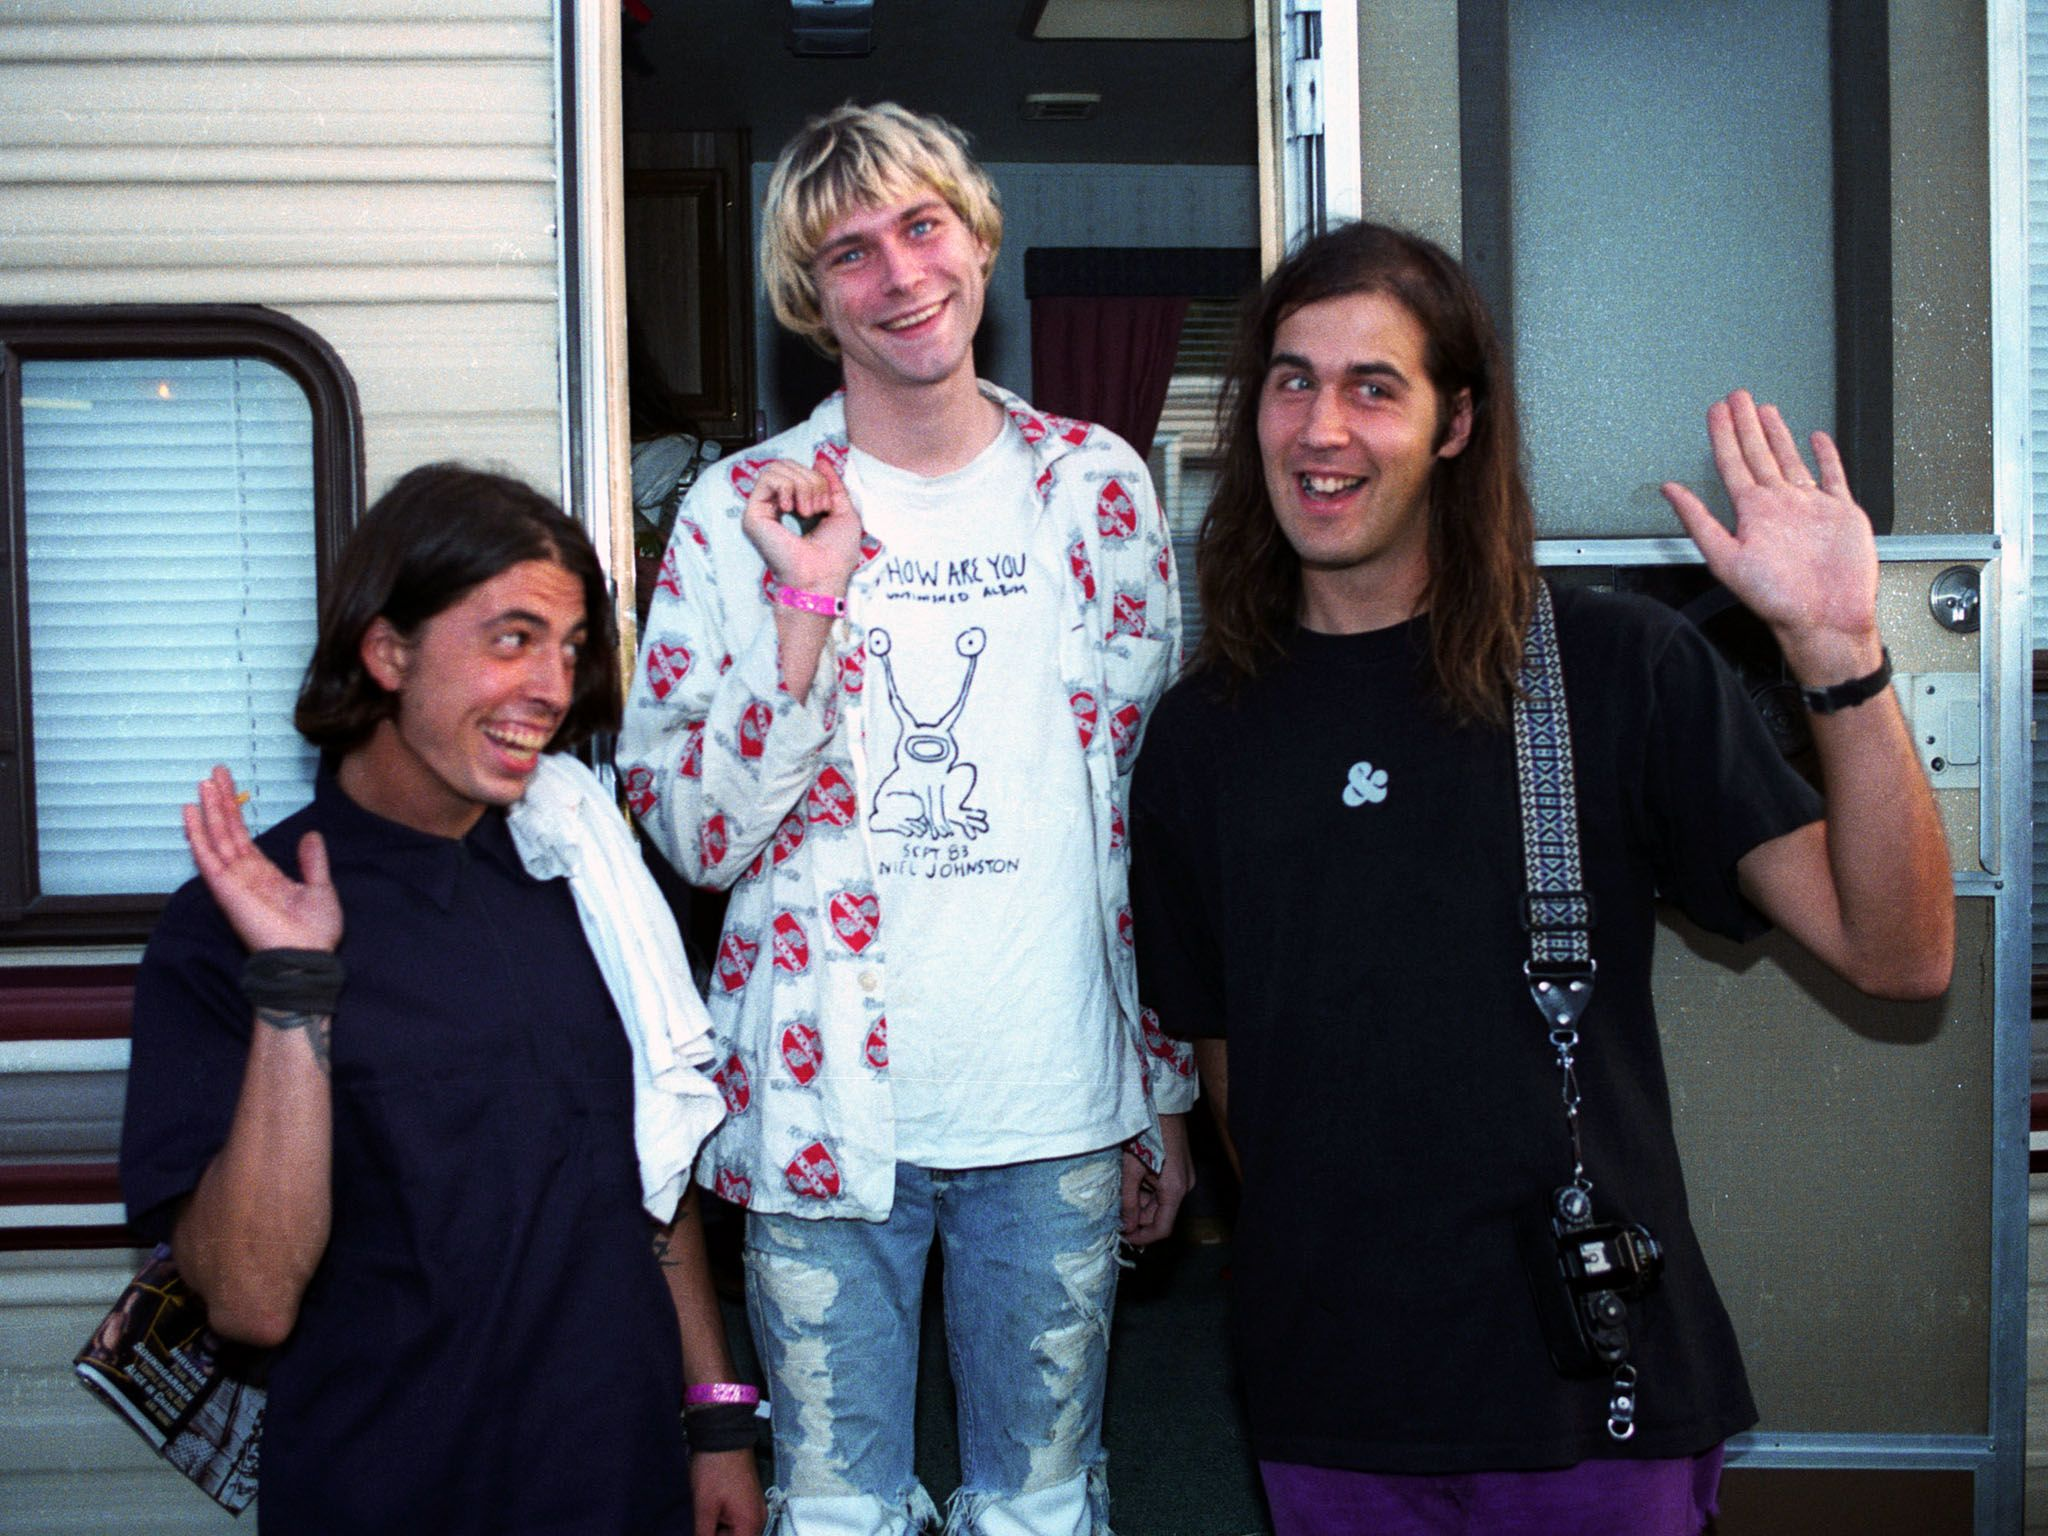 Dave Grohl, Kurt Cobain and Kirst Novoselic of Nirvana. This image is from Generation X. [Photo of the day - 四月 2016]